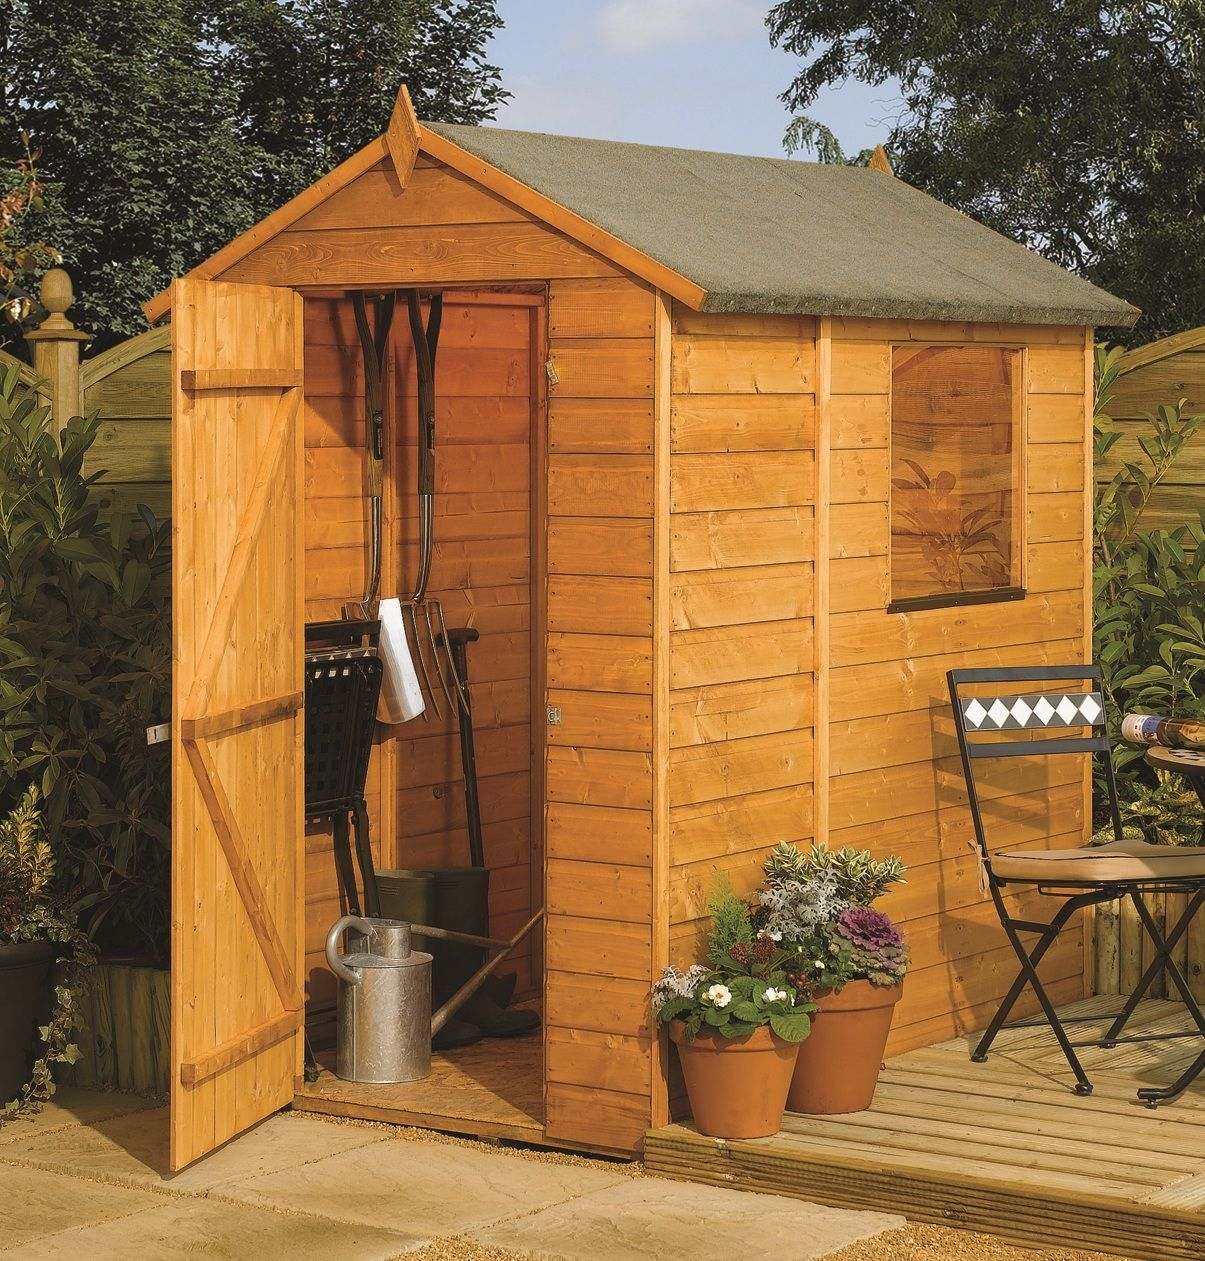 Garden Sheds 6x4 timber garden sheds uk - pueblosinfronteras